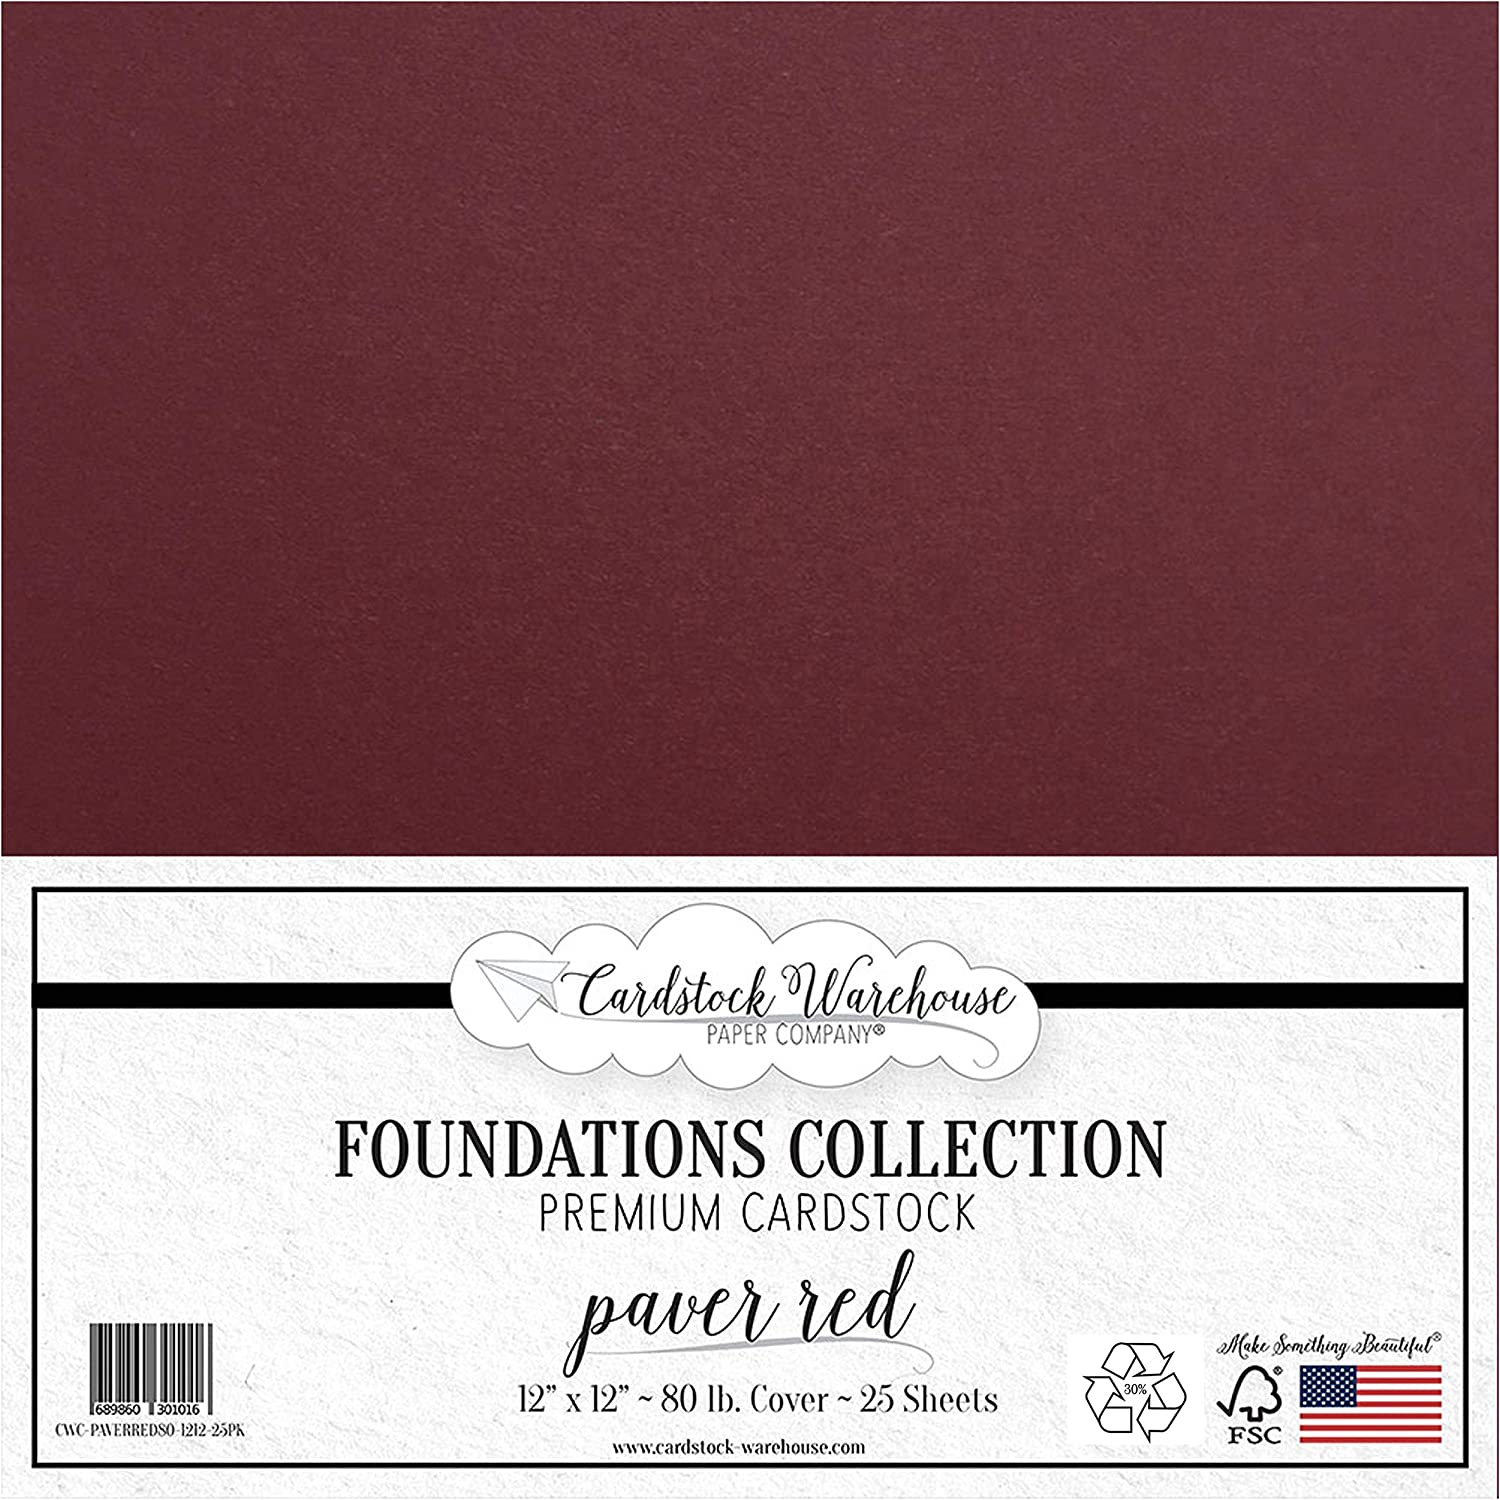 Recycled White Cardstock Paper 25 Sheets from Cardstock Warehouse Cover from 12 x 12 inch Premium 80 LB